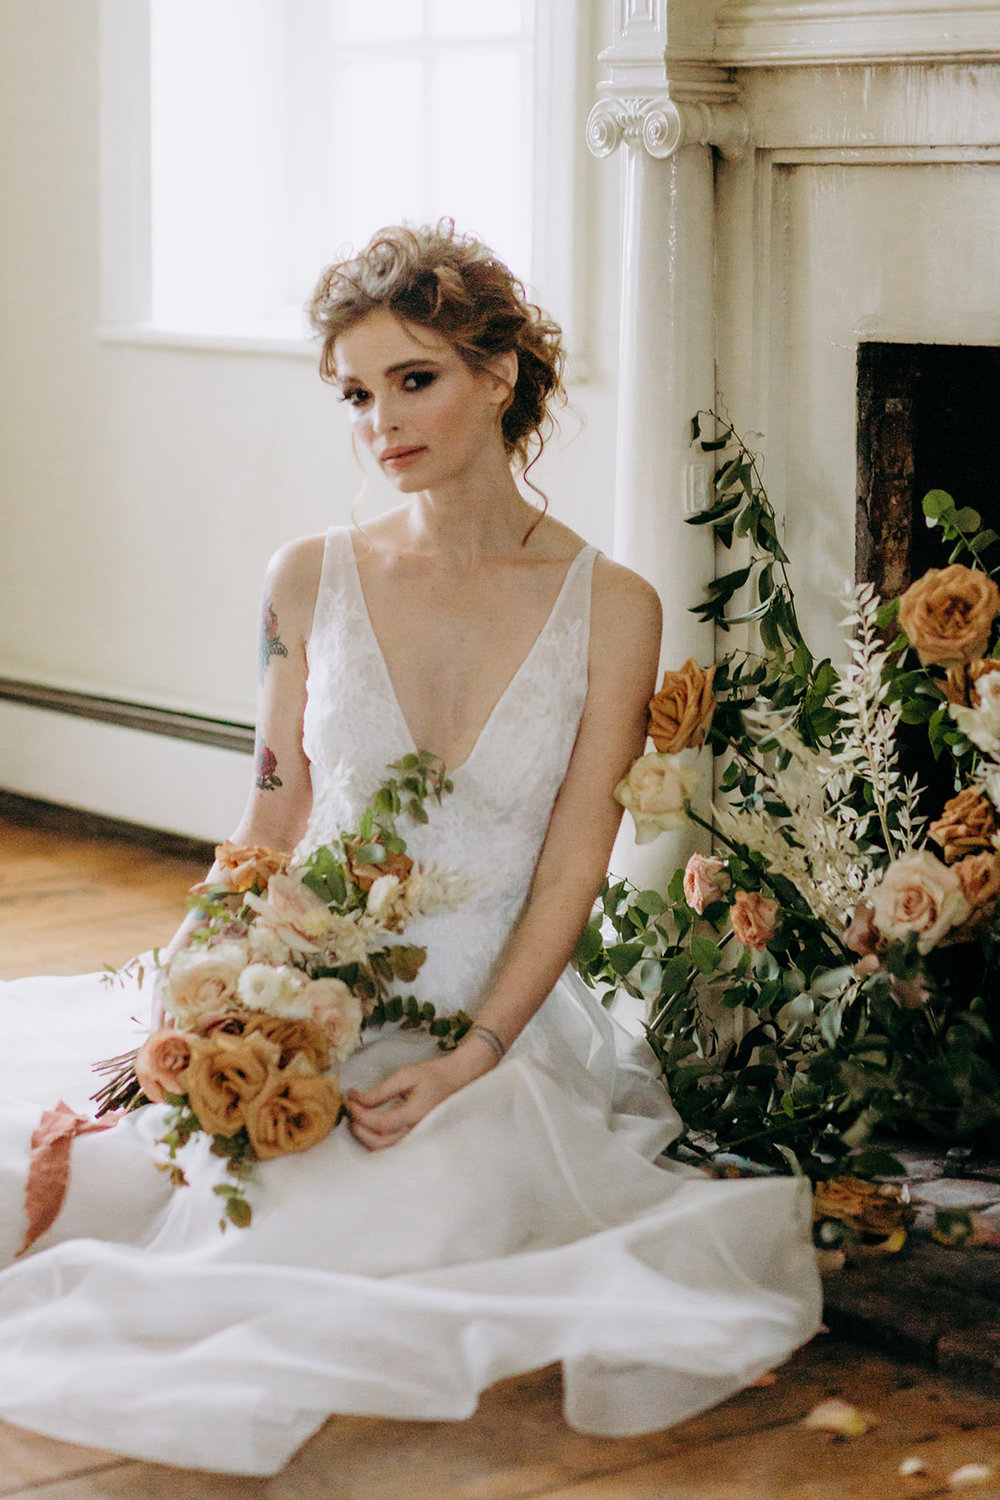 lea-ann-belter-bridal-editorial-windrift-hall-wedding-photographer-new-york-281.jpg